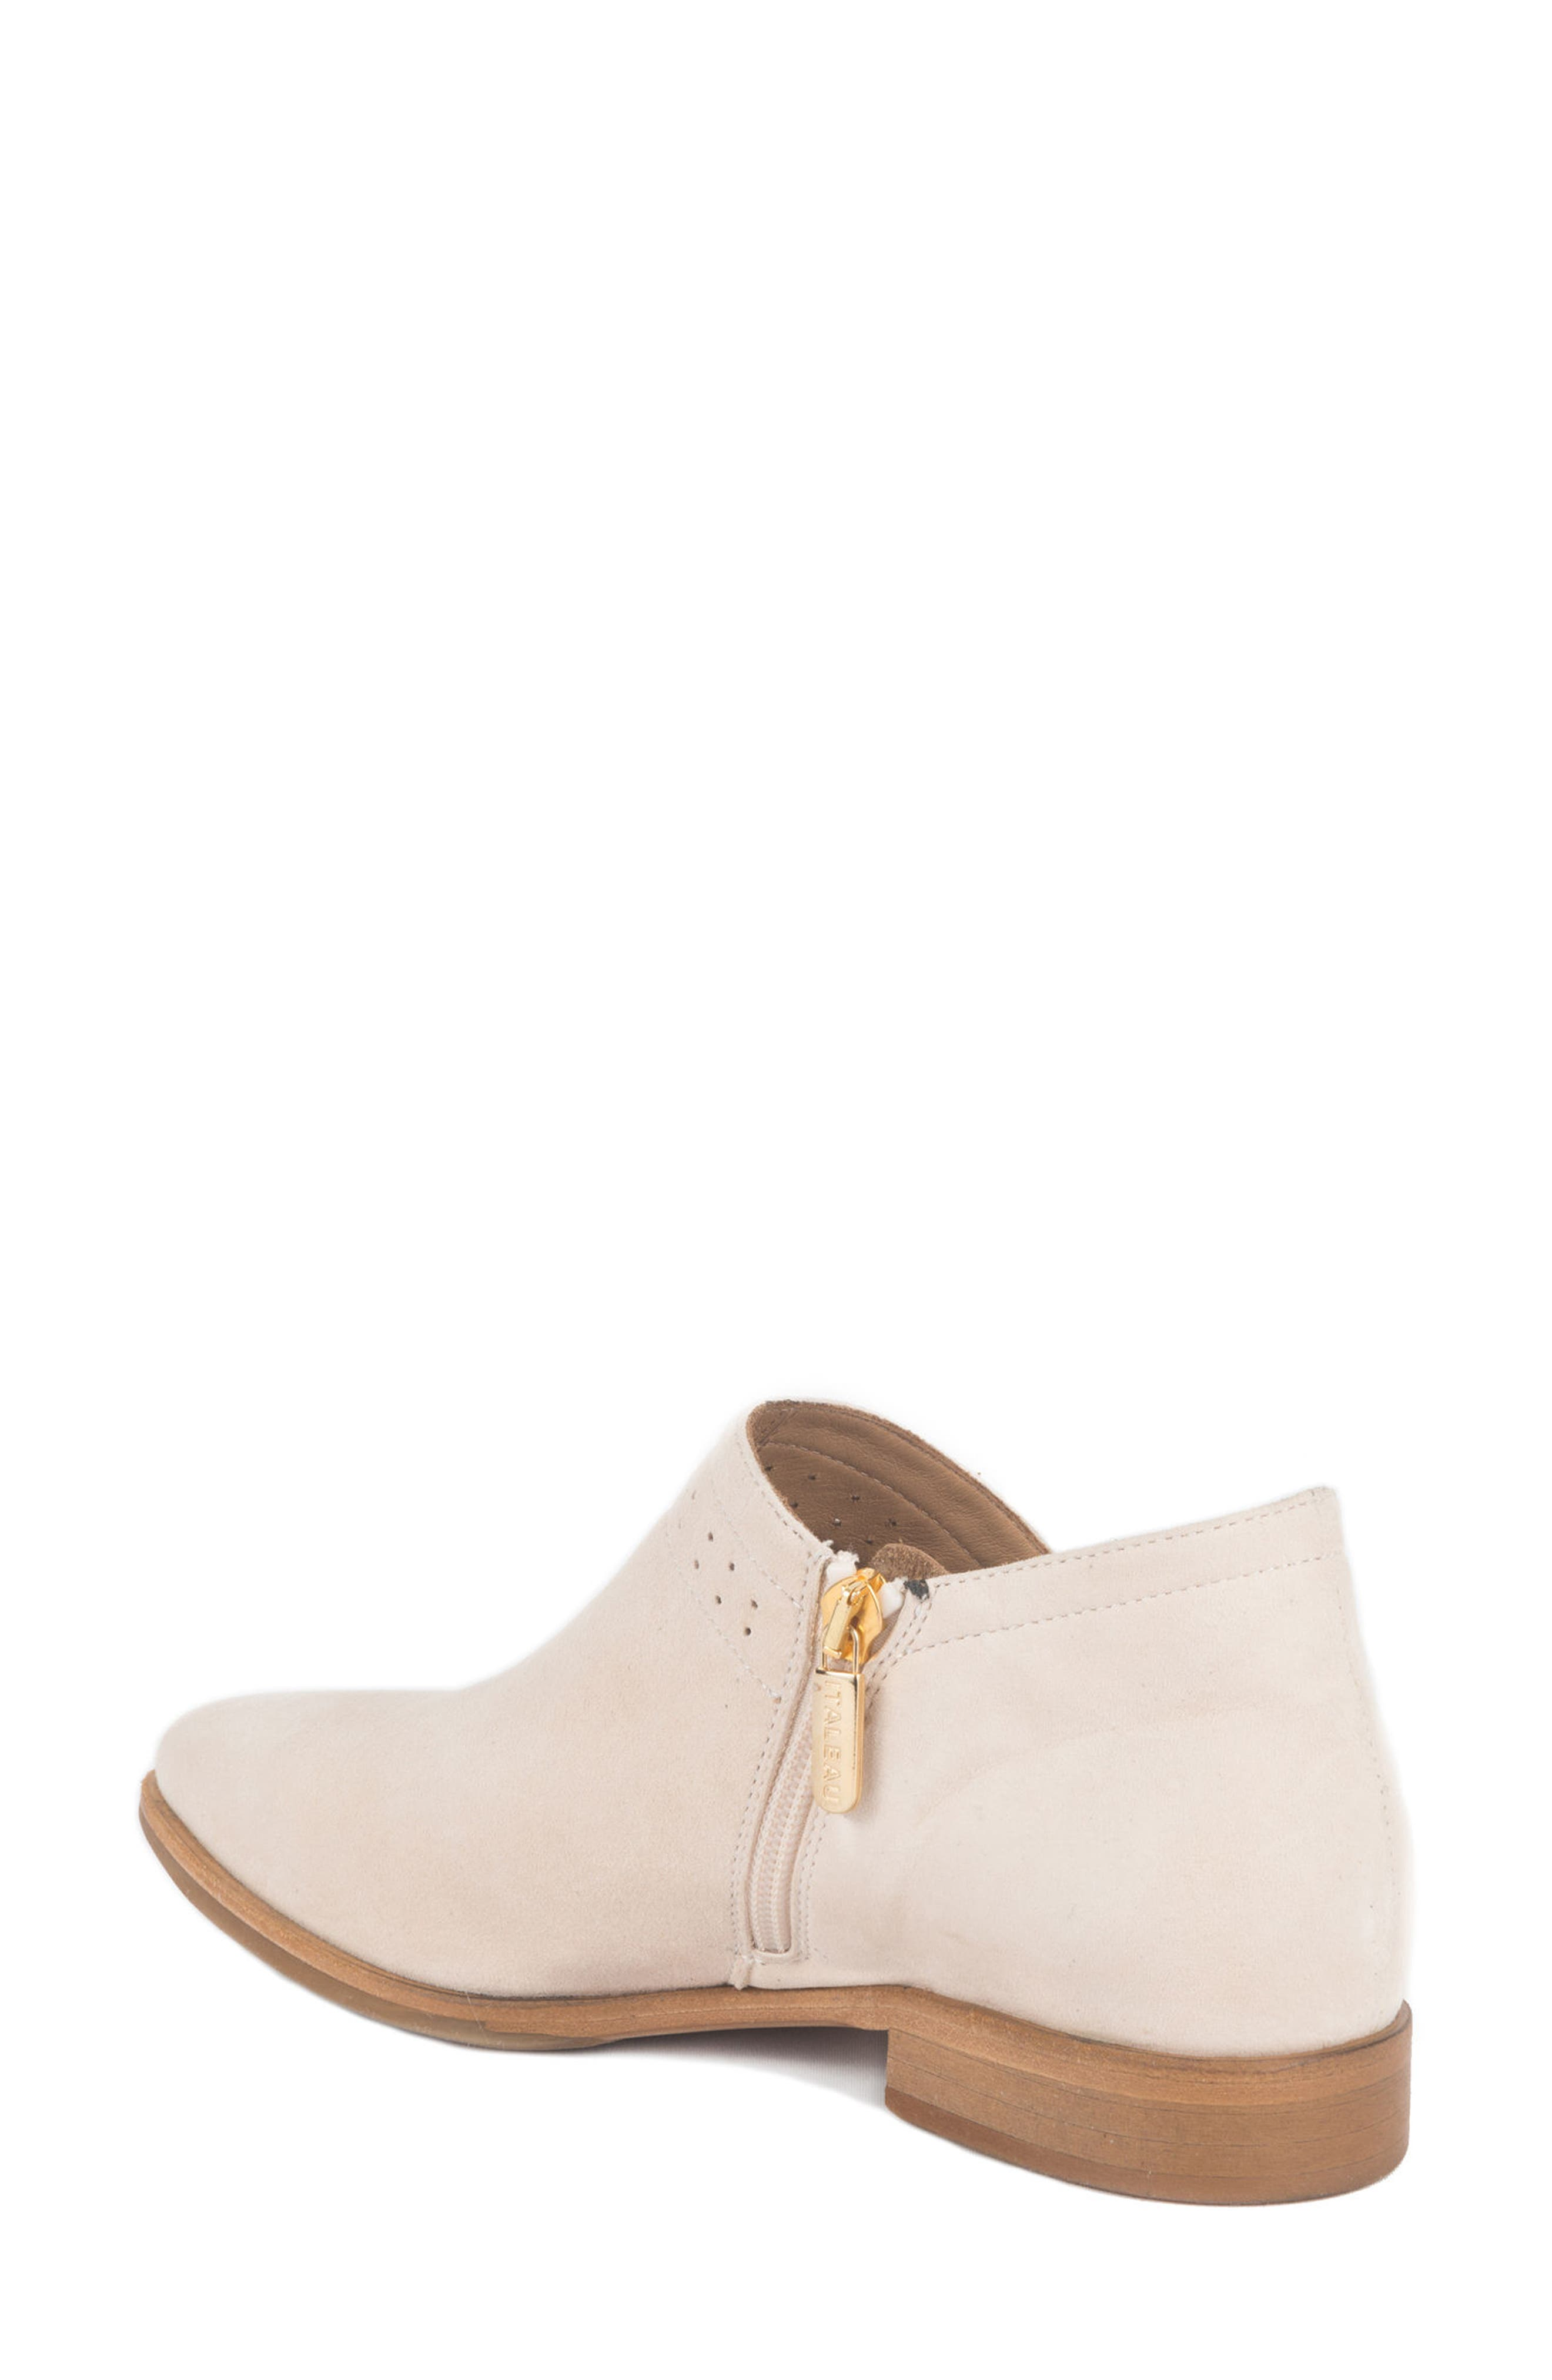 Florence Water Resistant Bootie,                             Alternate thumbnail 2, color,                             Bone